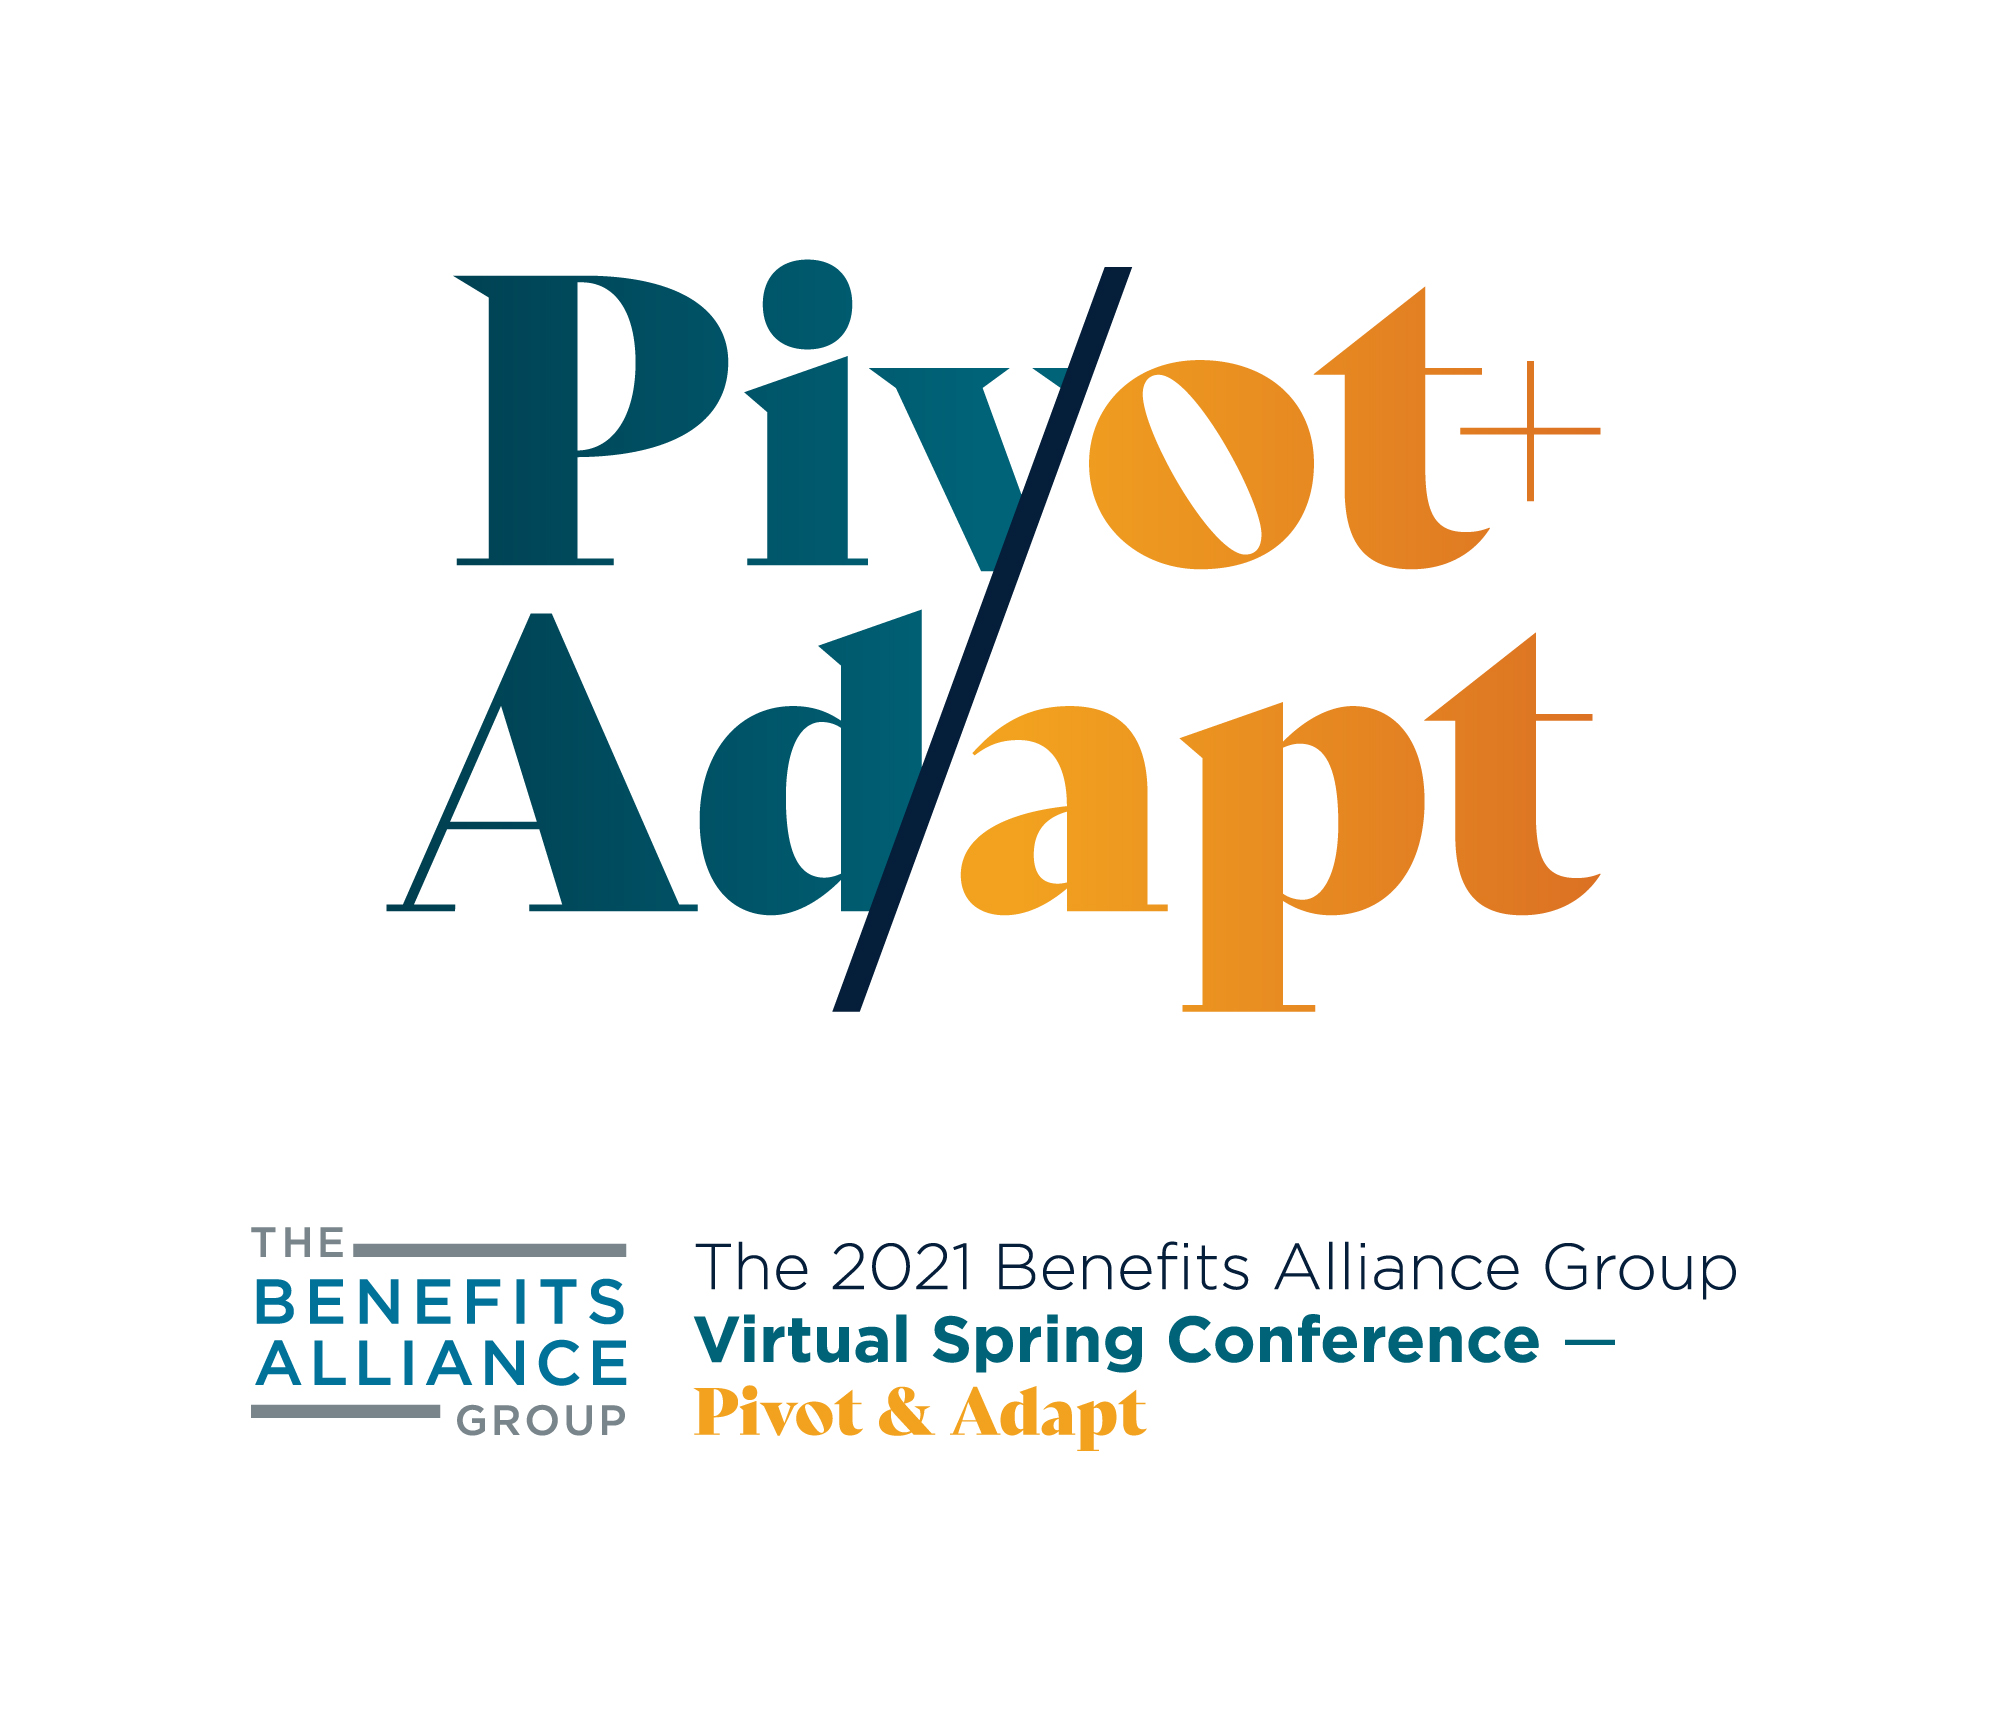 The-Benefits-Alliance-Virtual-Conference-Pivot-&-Adapt-2021-Benefits-And-Retirement-Conference